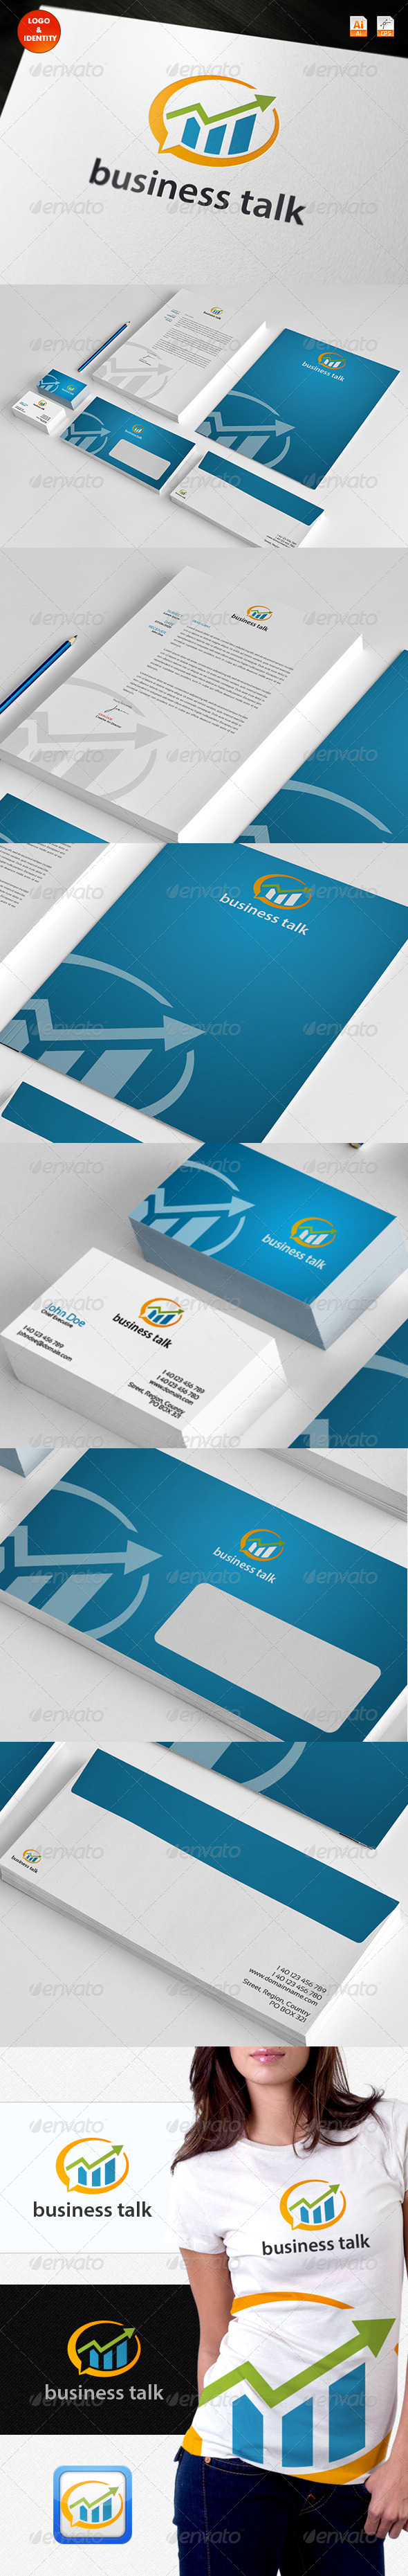 GraphicRiver Business Talk Logo & Identity 3750574